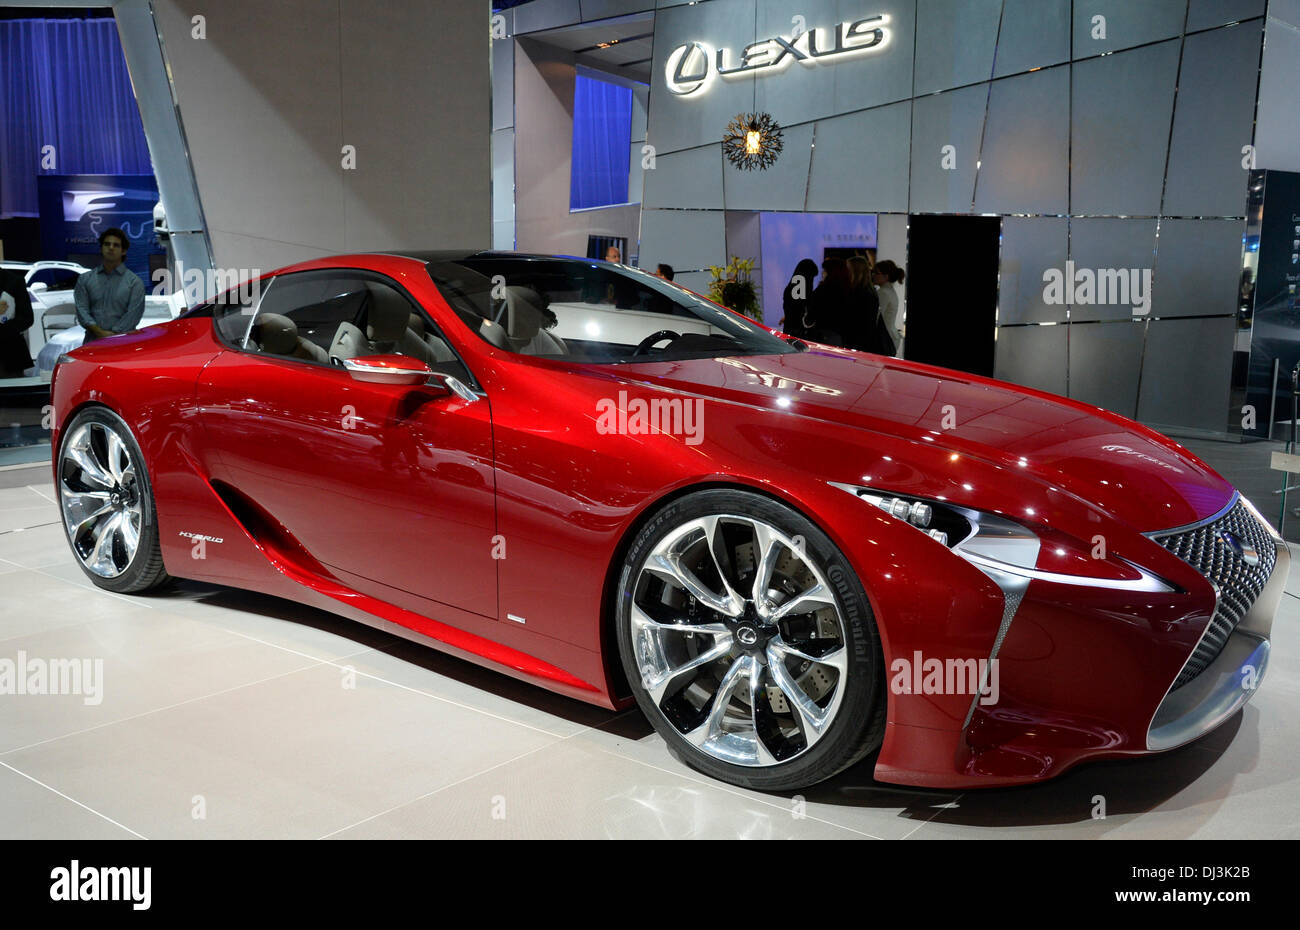 Lexus Los Angeles >> Los Angeles California Usa 20th Nov 2013 Lexus Lf Lc Hybrid